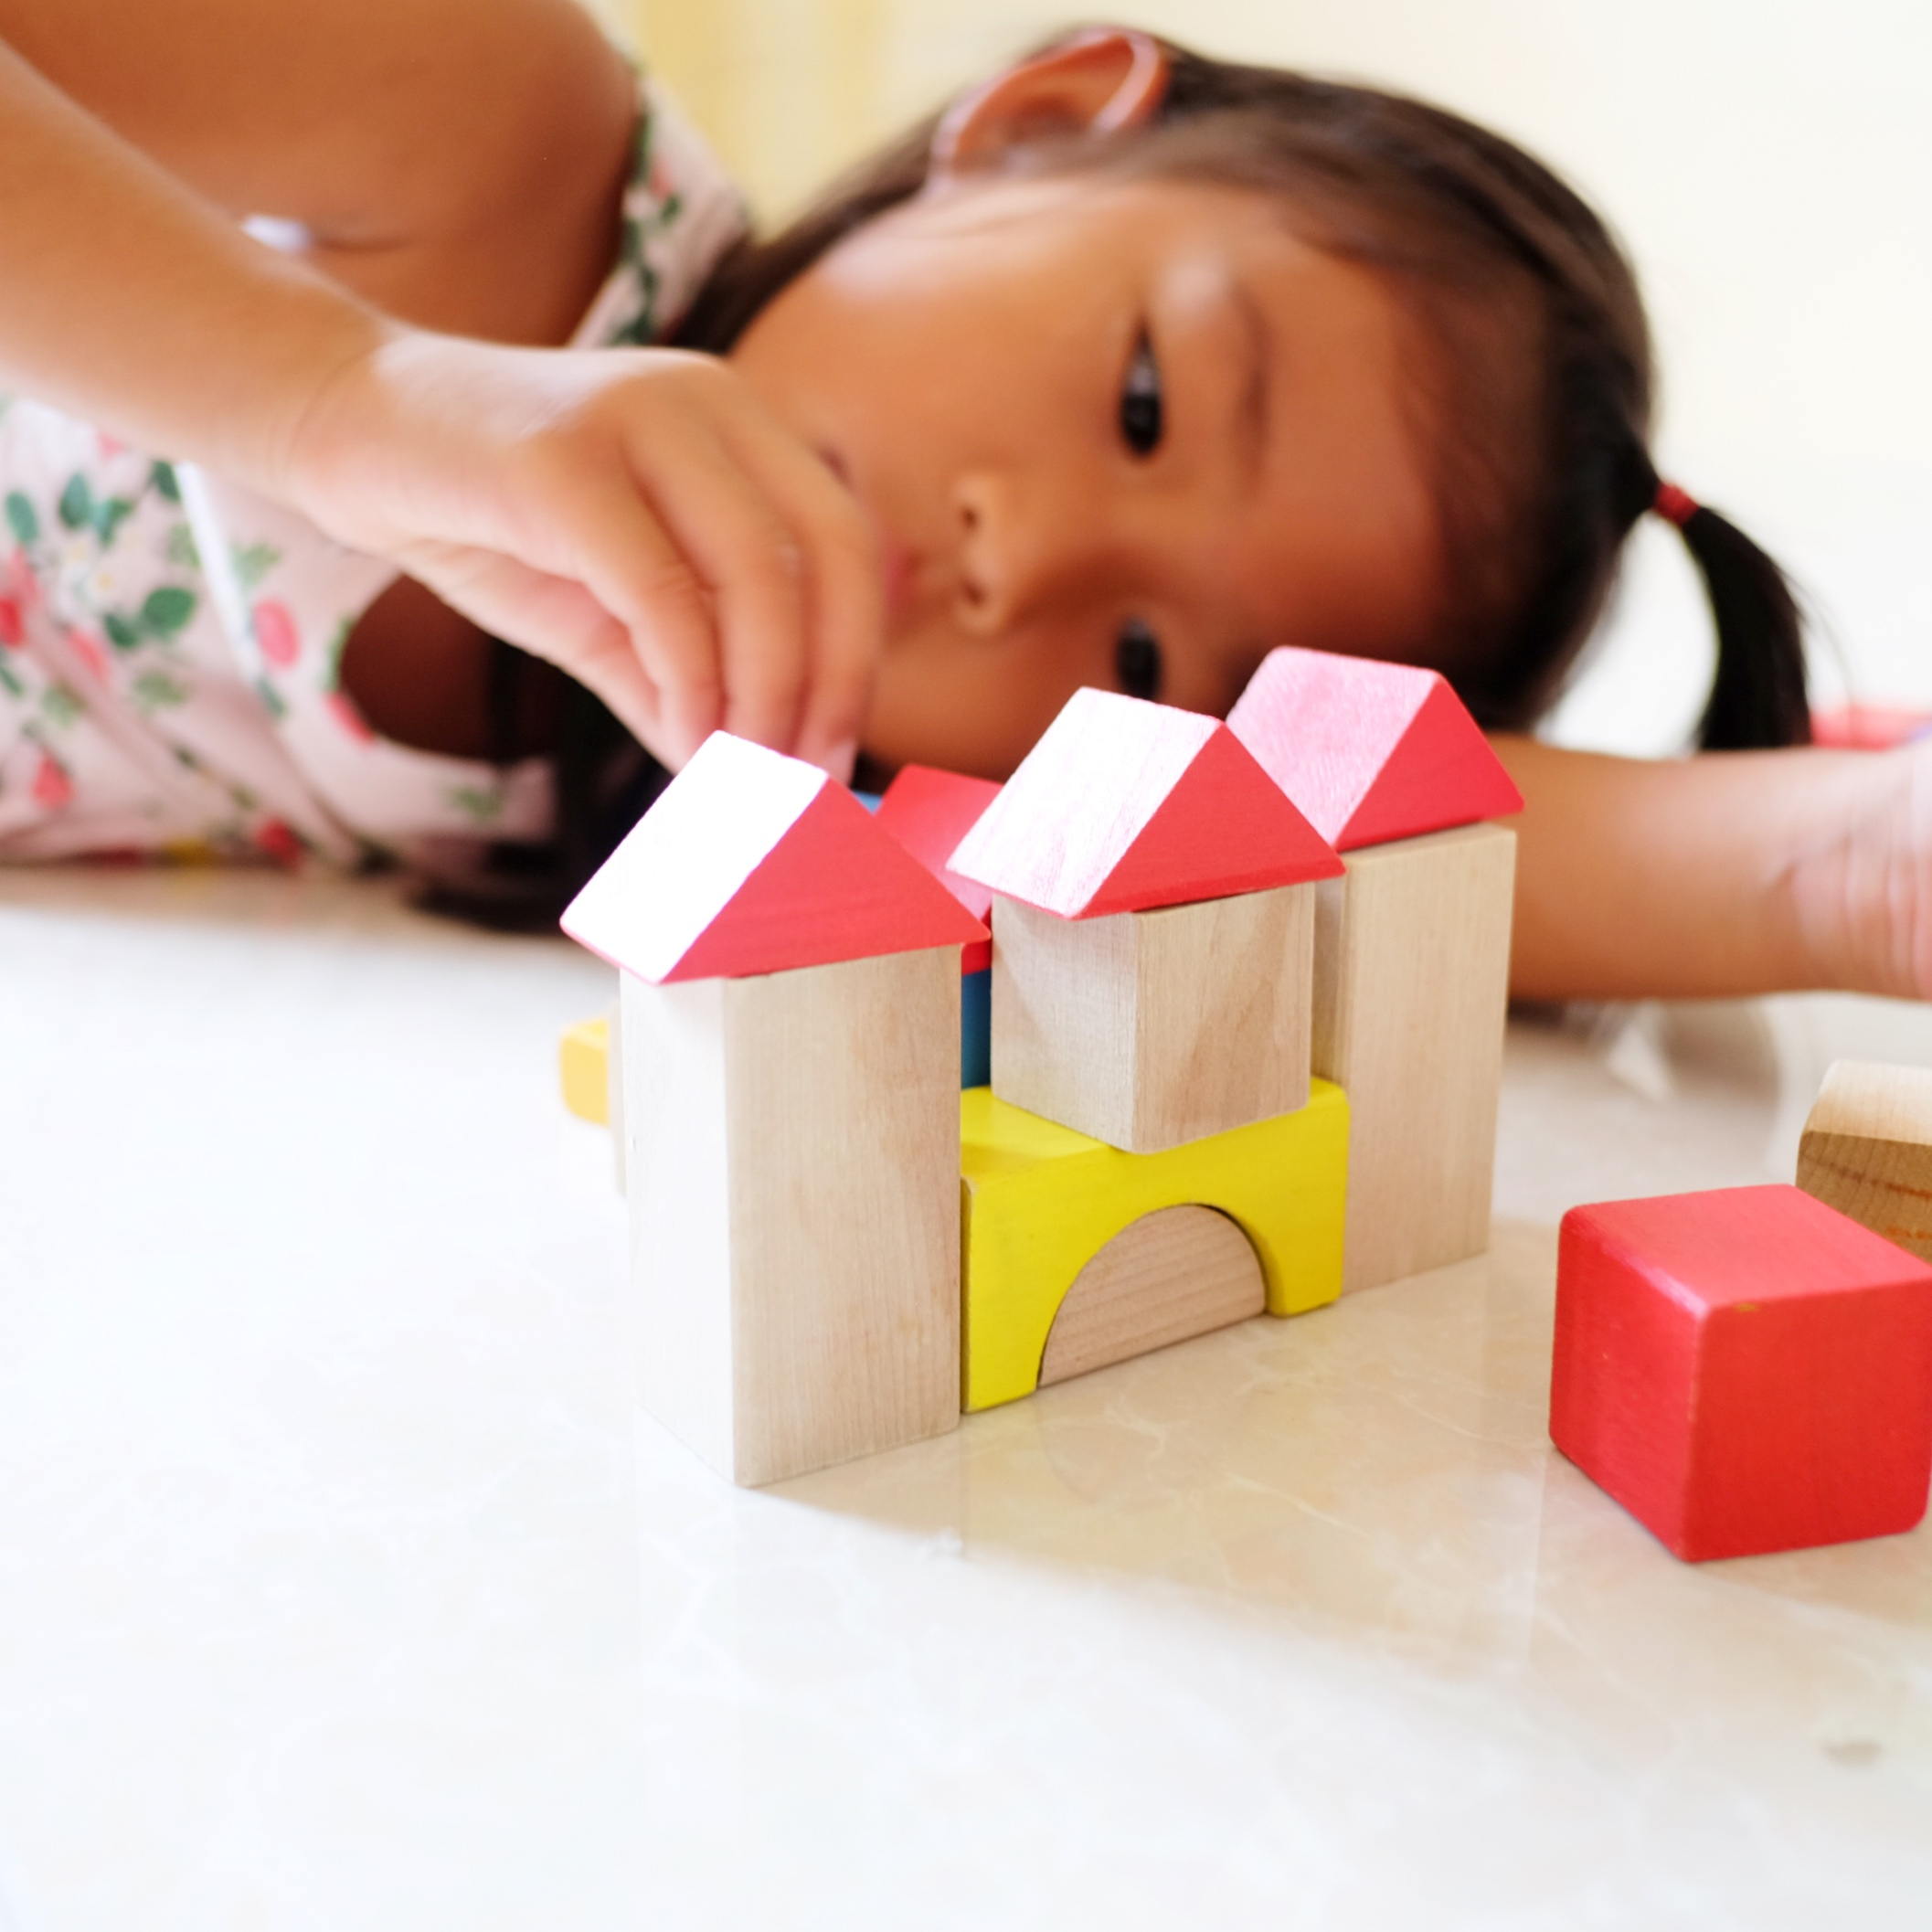 Pediatricians Suggest Gifting Your Kids With Boxes and Blocks Instead of High Tech Toys